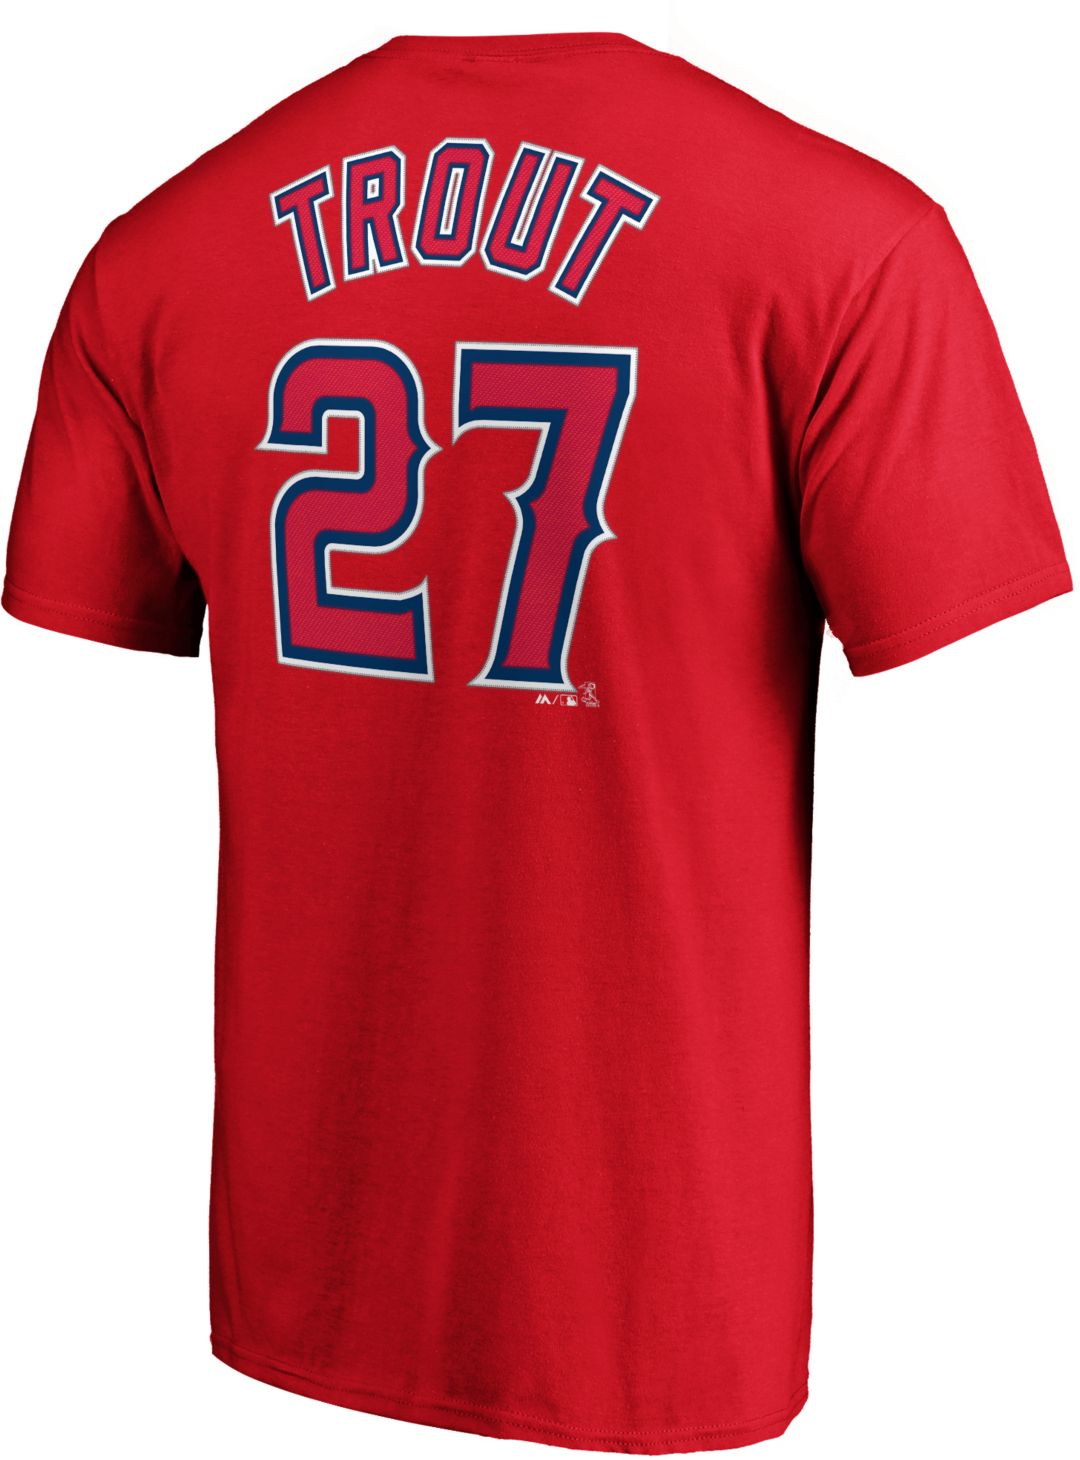 8ca18c1e738 Majestic Men's Los Angeles Angels Mike Trout #27 Red T-Shirt ...